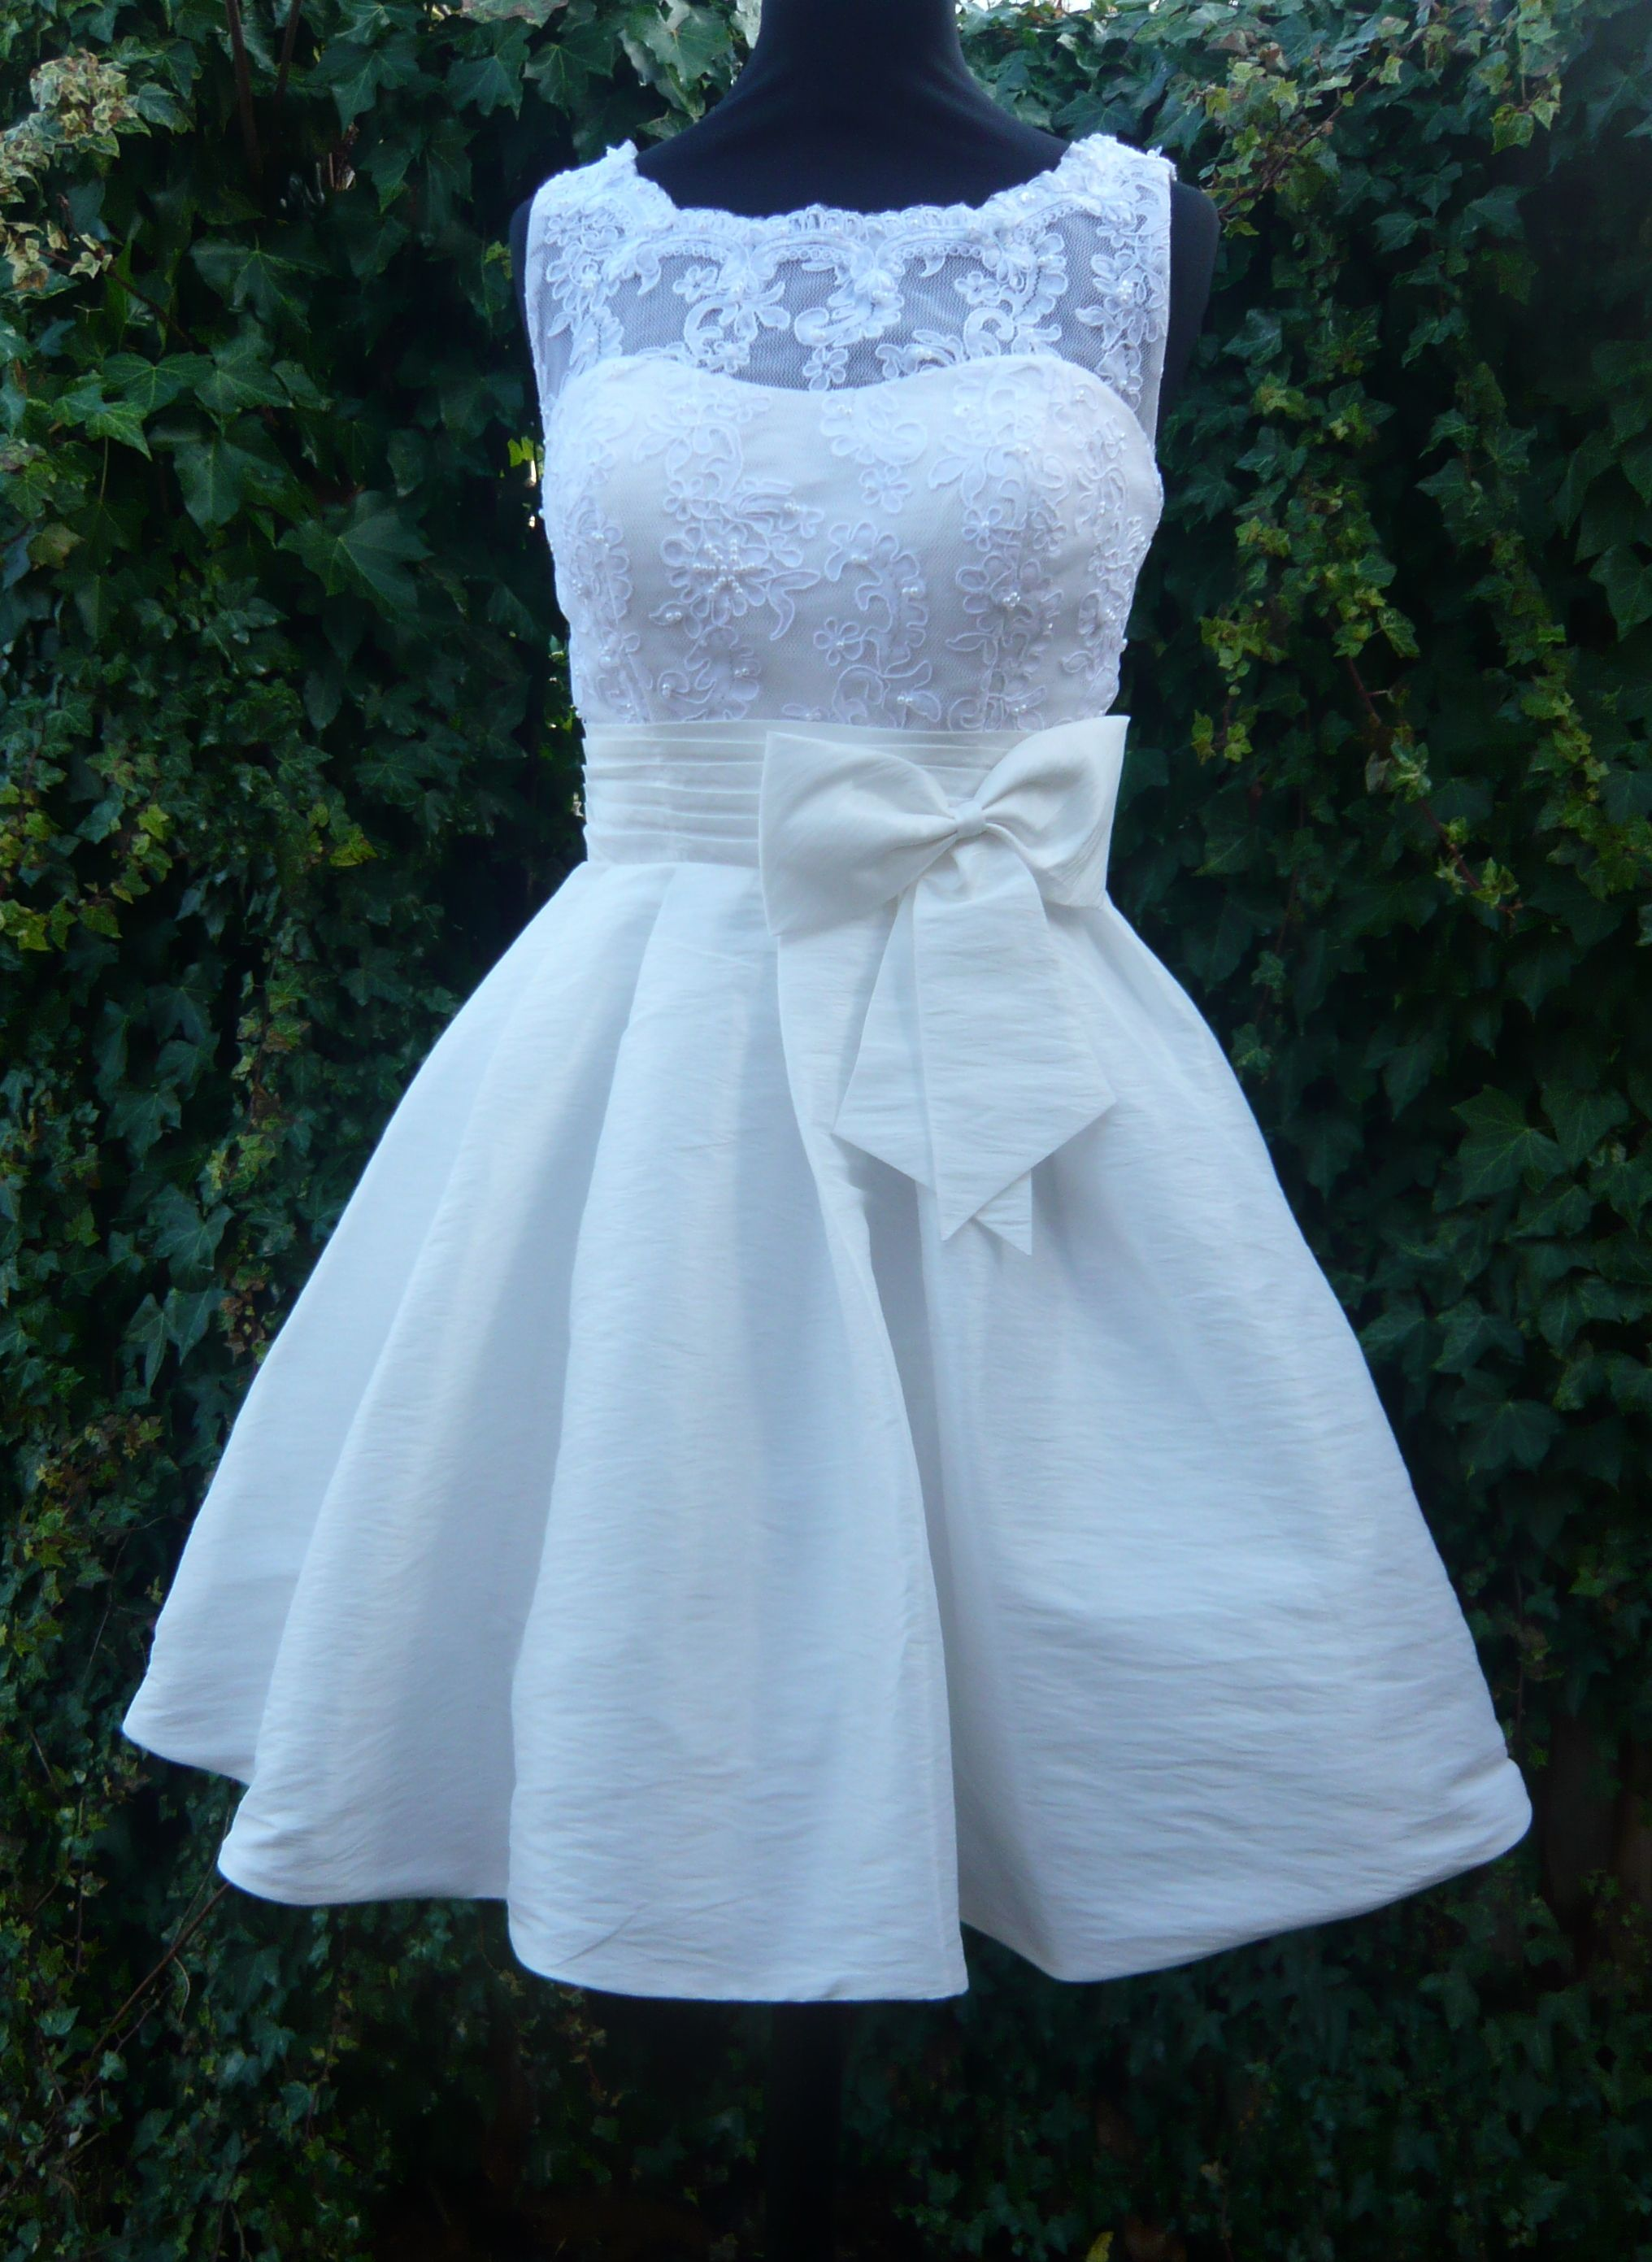 Adorable rehearsal dinner dress | Wedding Stuff | Pinterest ...